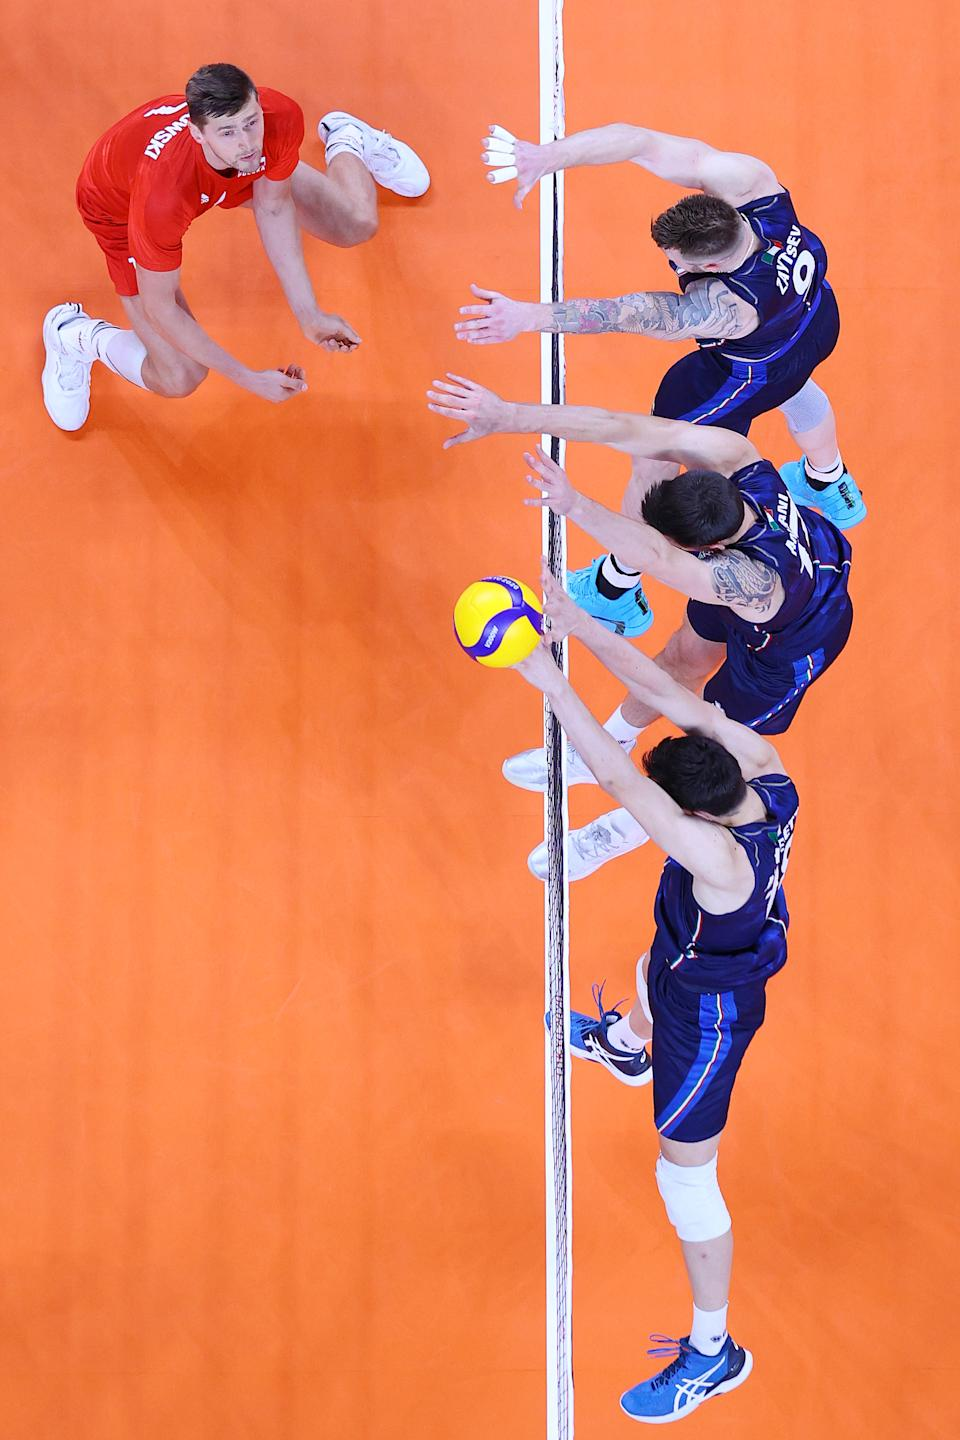 <p>TOKYO, JAPAN - JULY 26: Team Italy blocks the hit by Team Poland during the Men's Preliminary Round - Pool A volleyball on day three of the Tokyo 2020 Olympic Games at Ariake Arena on July 26, 2021 in Tokyo, Japan. (Photo by Toru Hanai/Getty Images)</p>